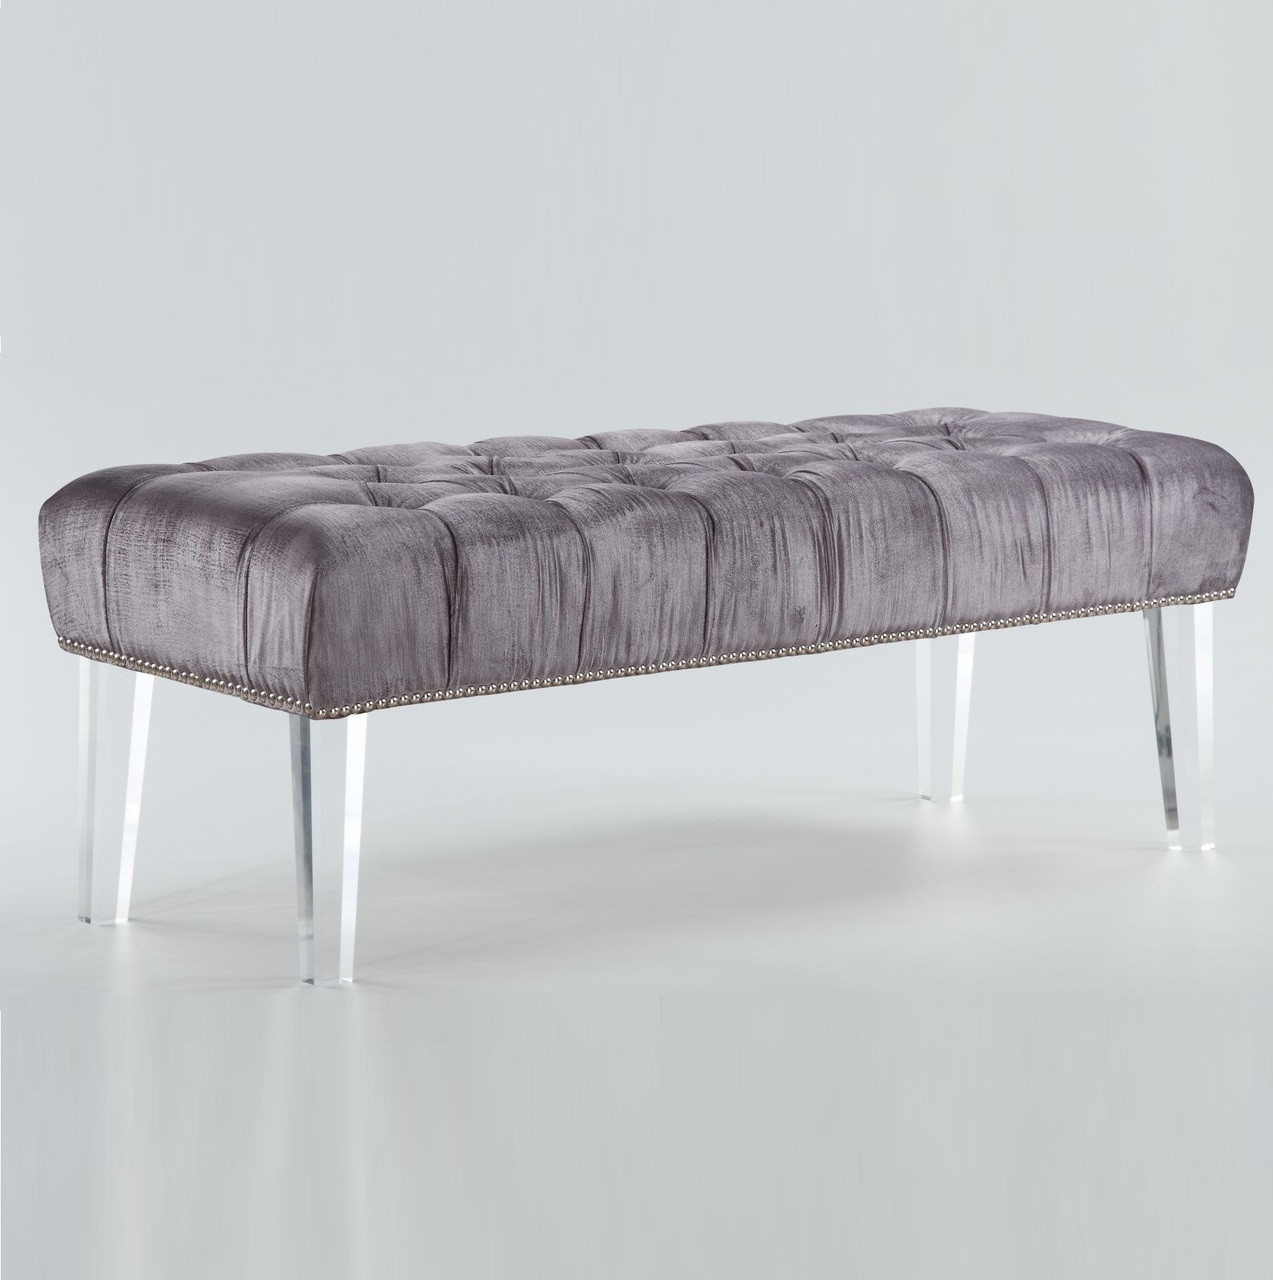 Stella Grey Velvet Tufted Acrylic Bed End Bench & Stella Grey Velvet Tufted Acrylic Bed End Bench | Zin Home islam-shia.org